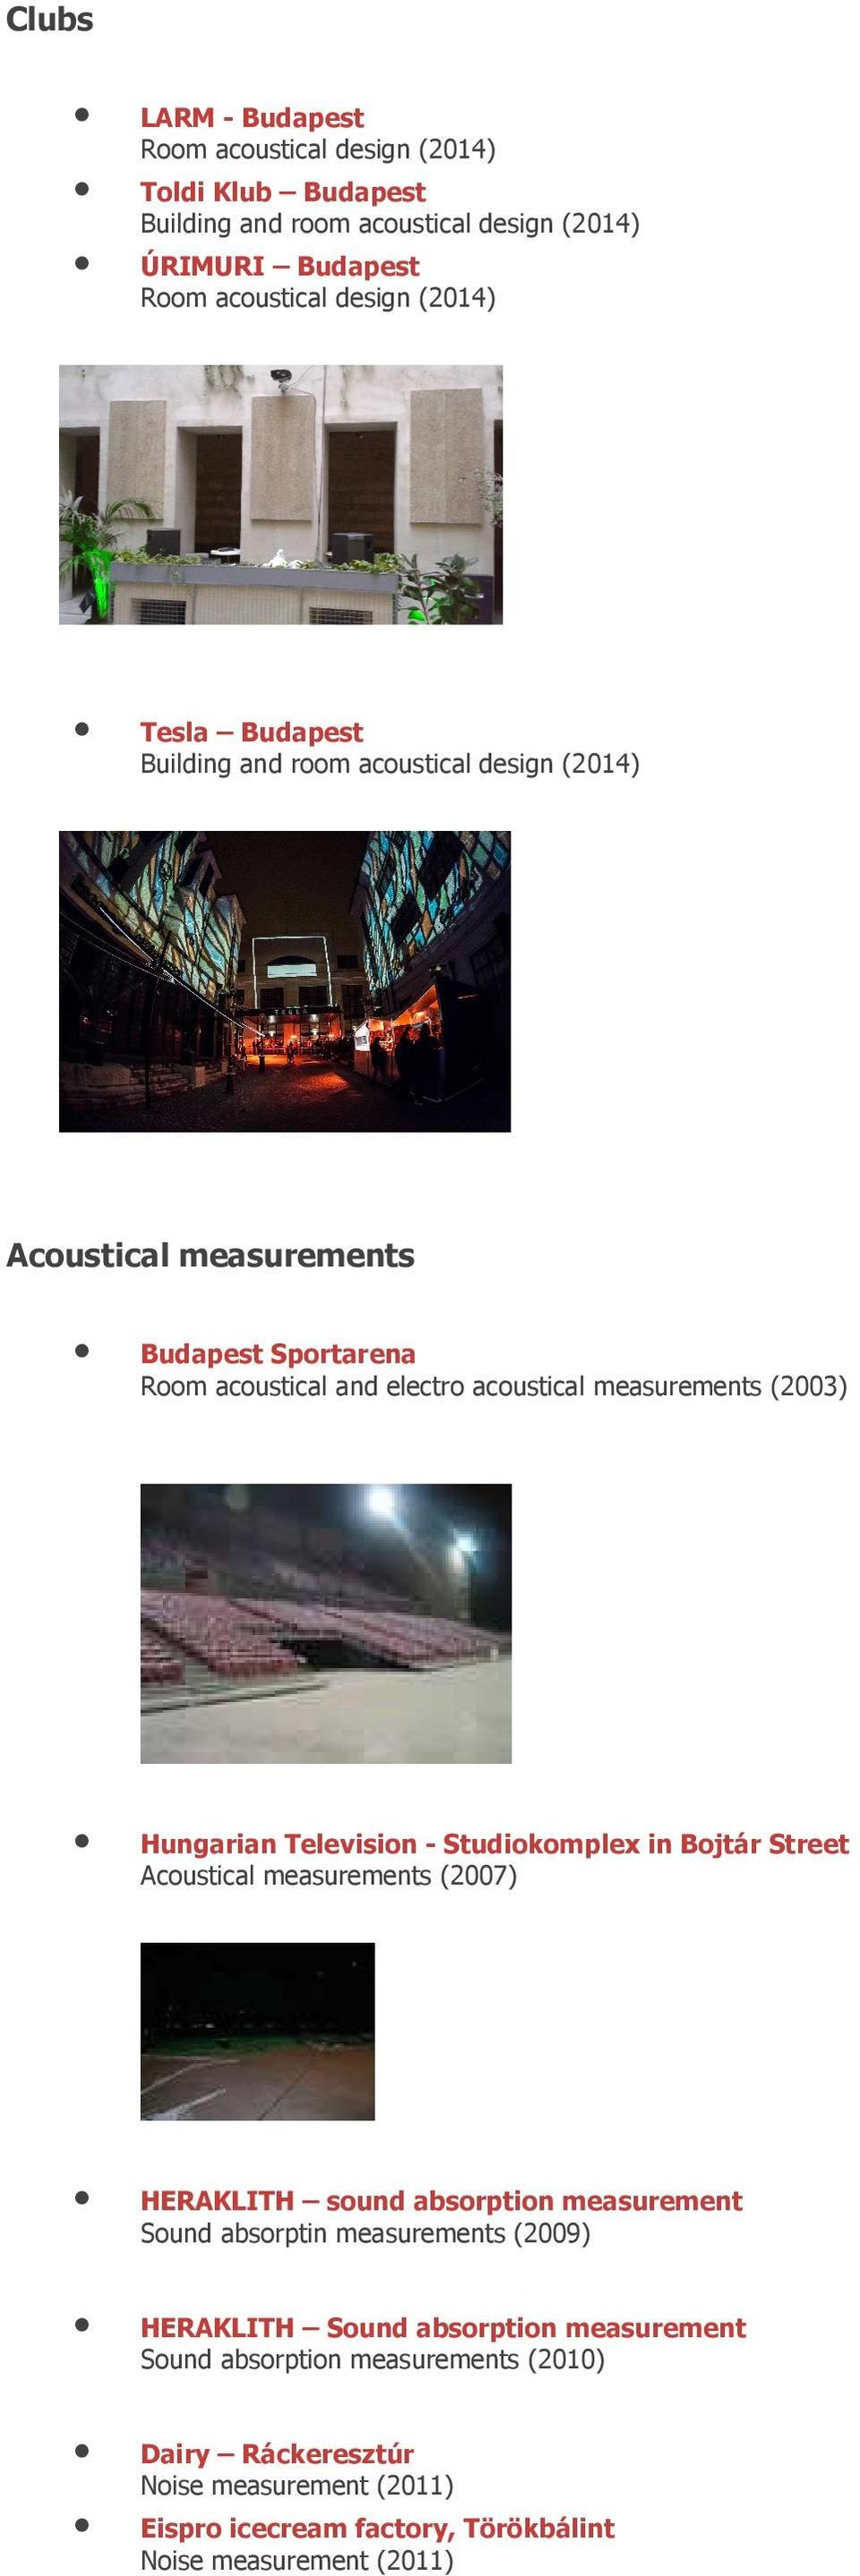 Hungarian Television - Studiokomplex in Bojtár Street Acoustical measurements (2007) HERAKLITH sound absorption measurement Sound absorptin measurements (2009)